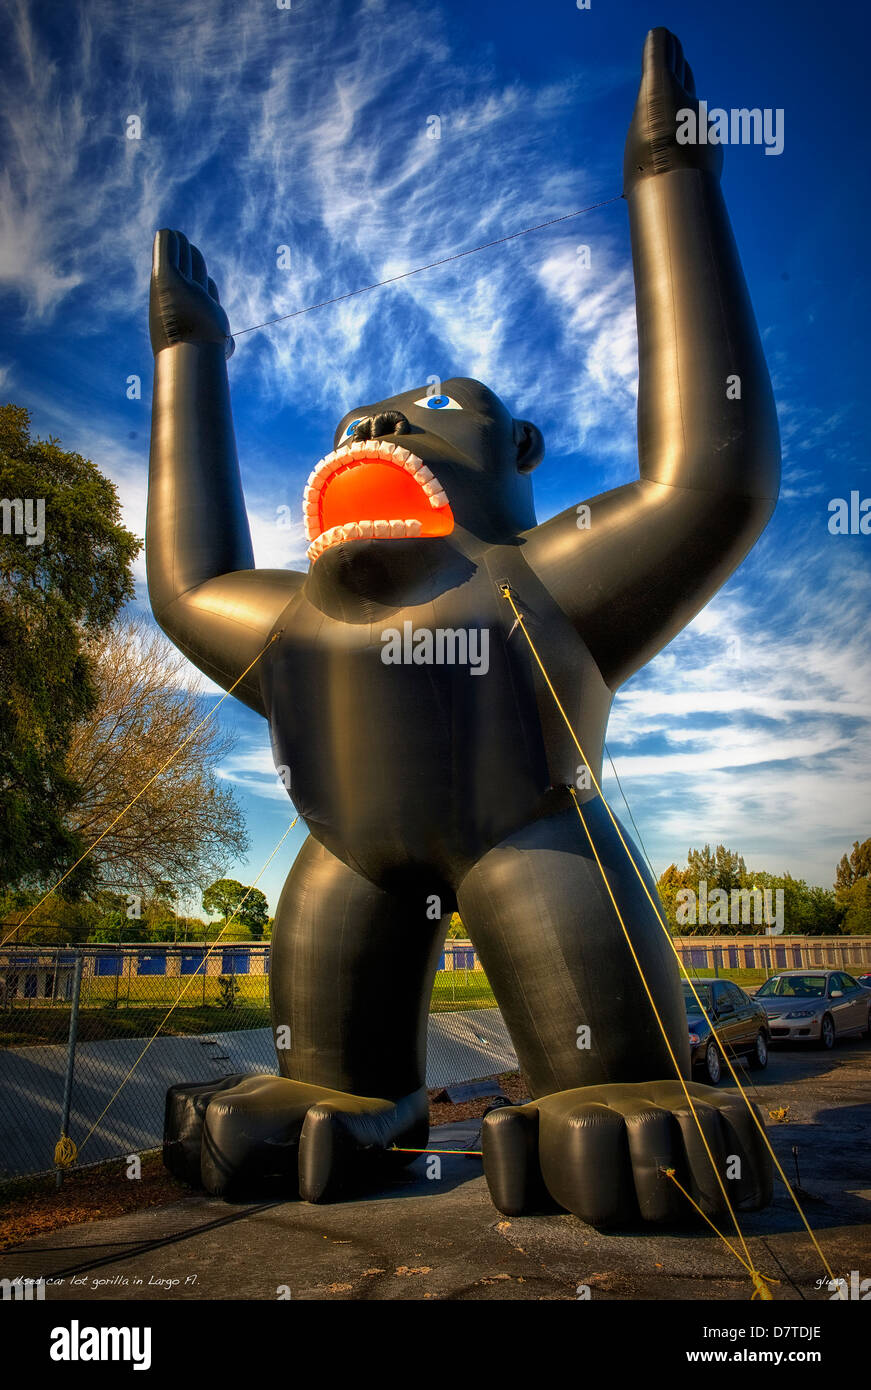 Inflatable gorilla used car lot attraction,St Petersburg,Florida - Stock Image